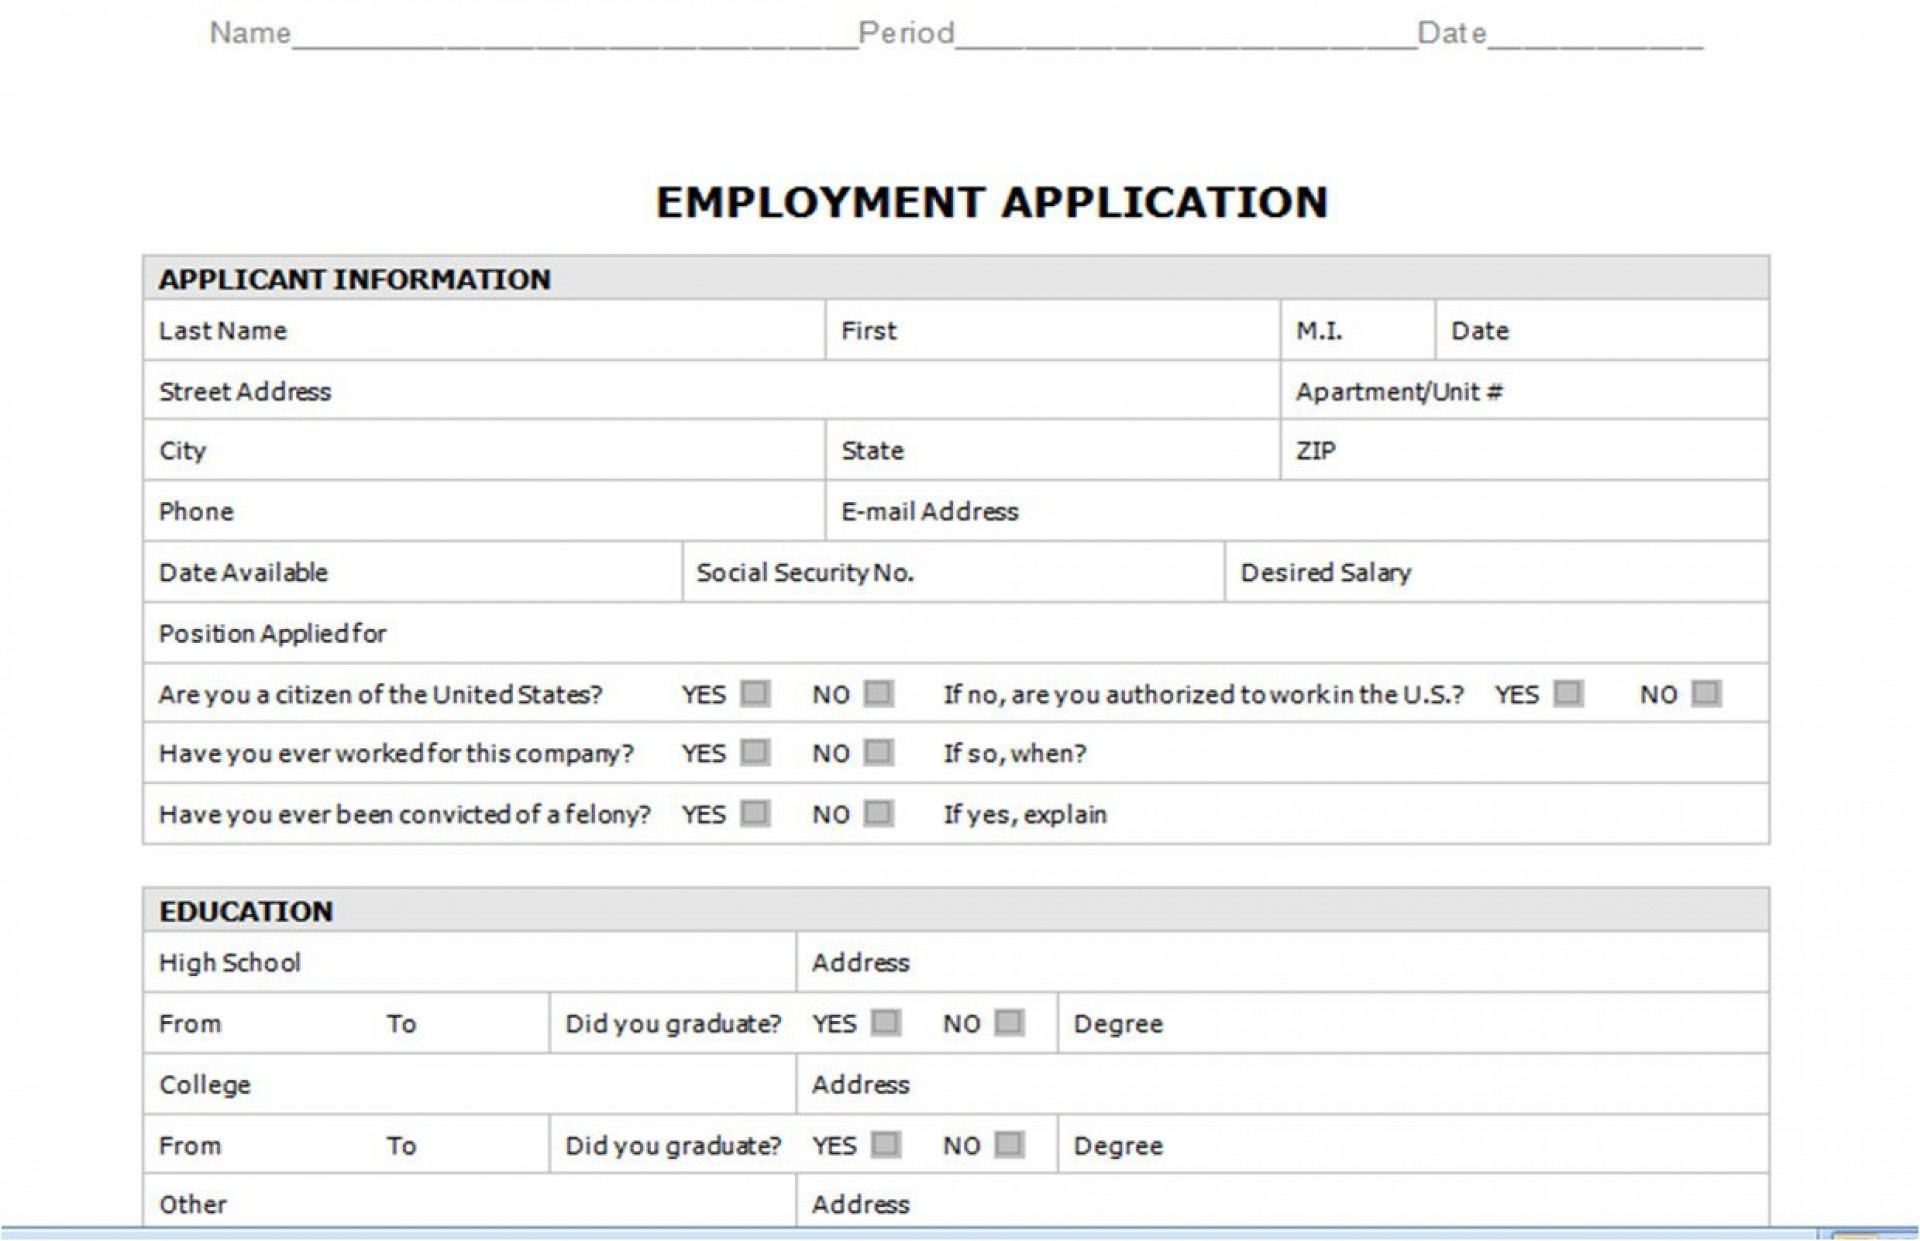 008 Staggering Generic Job Application Template Word Design 1920